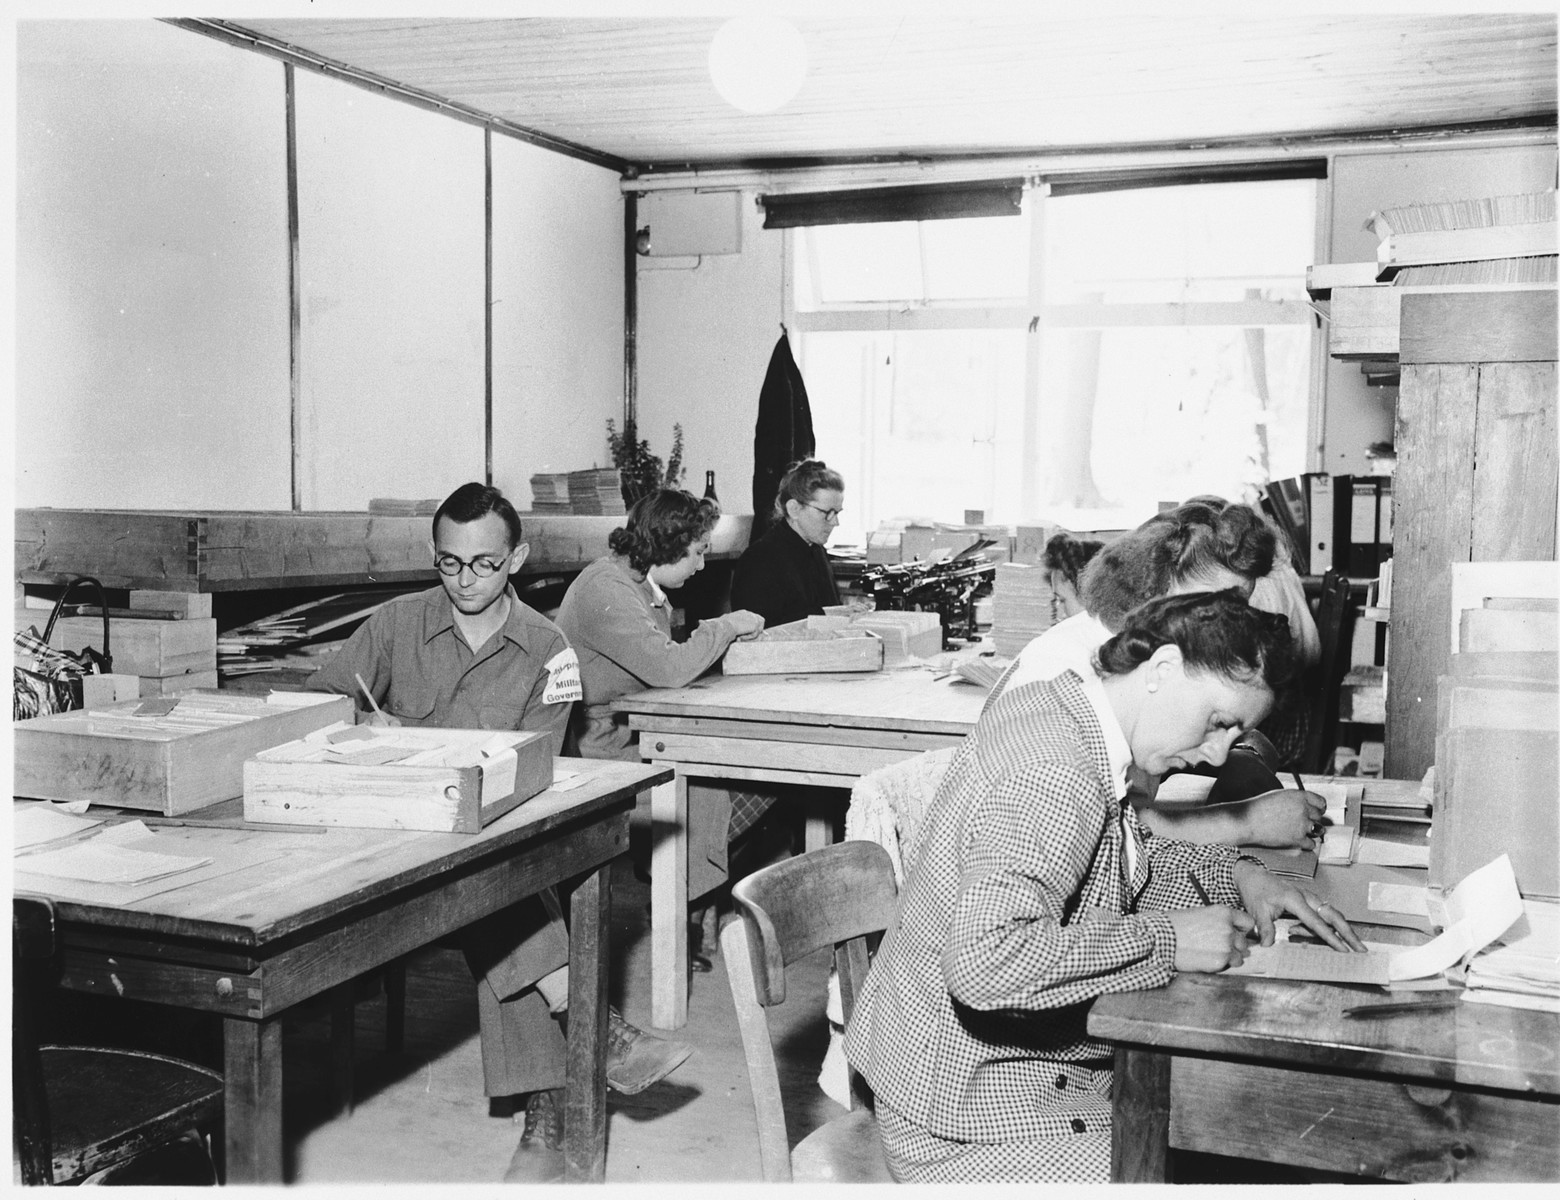 Men and women at work in the war crimes commission office established in Buchenwald.